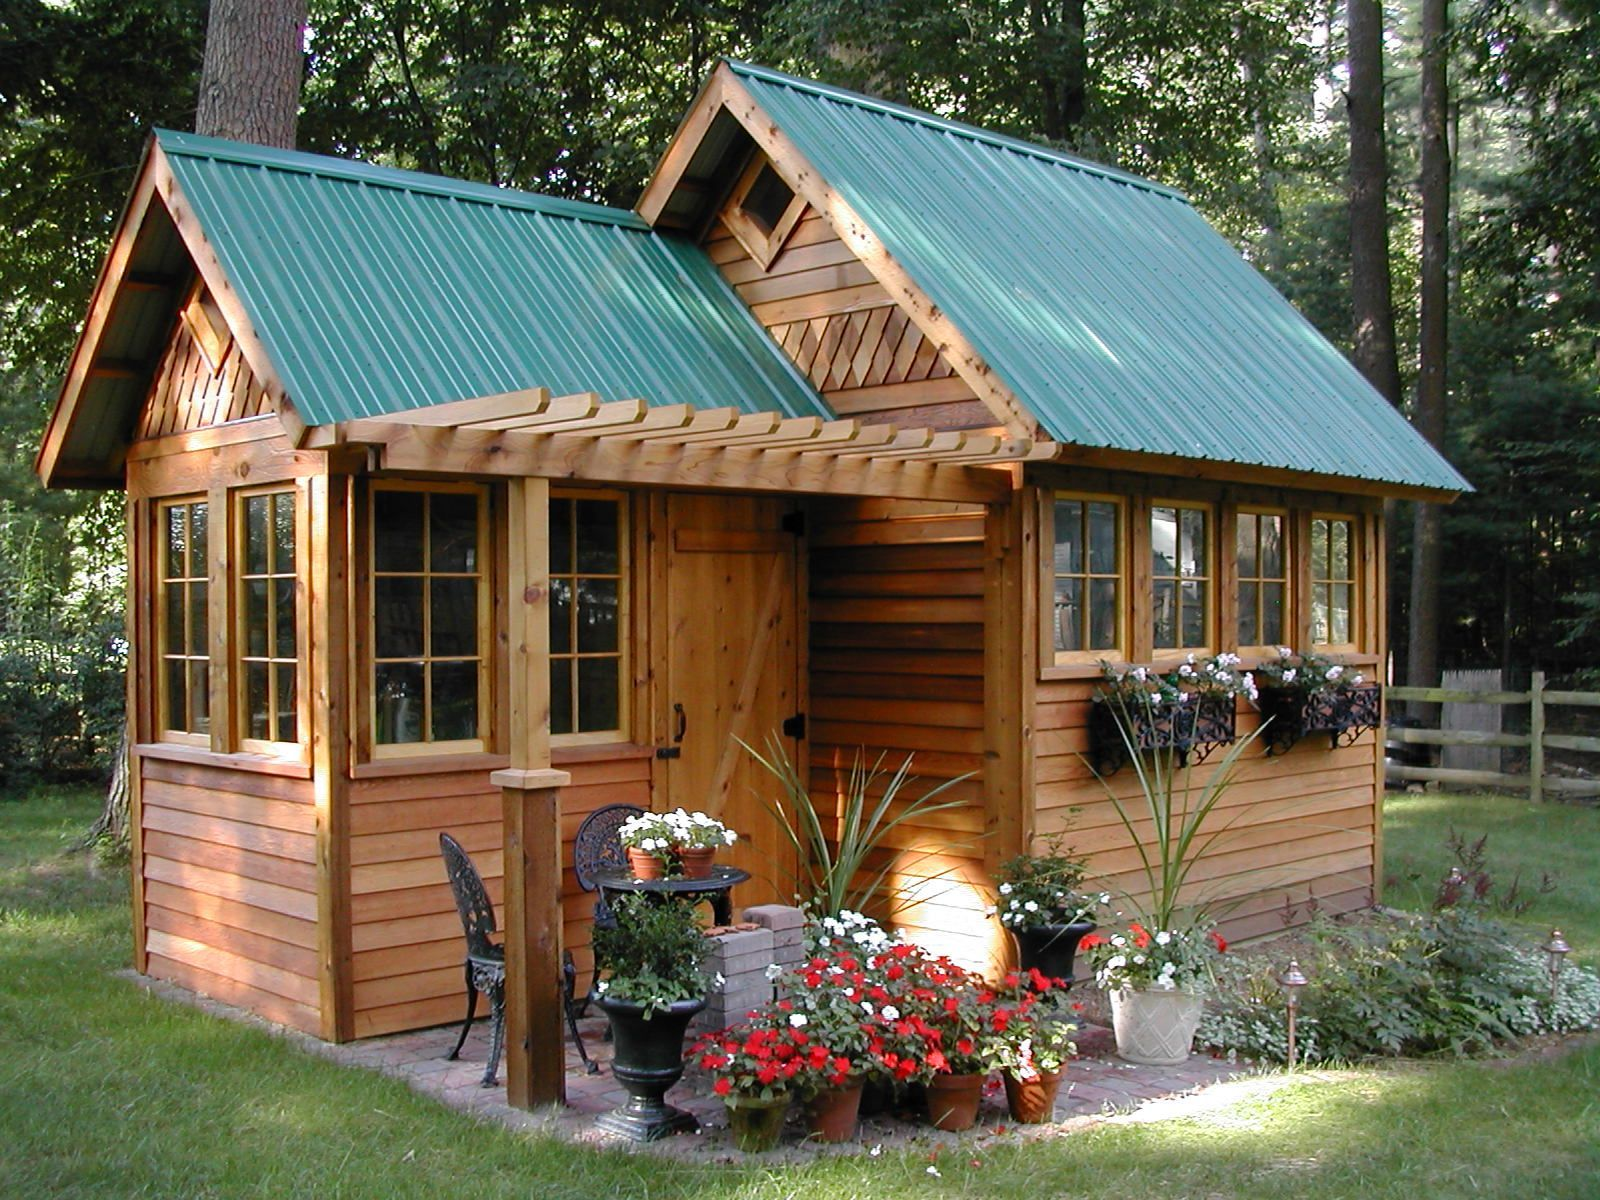 Pretty Garden Shed Idea In The Middle